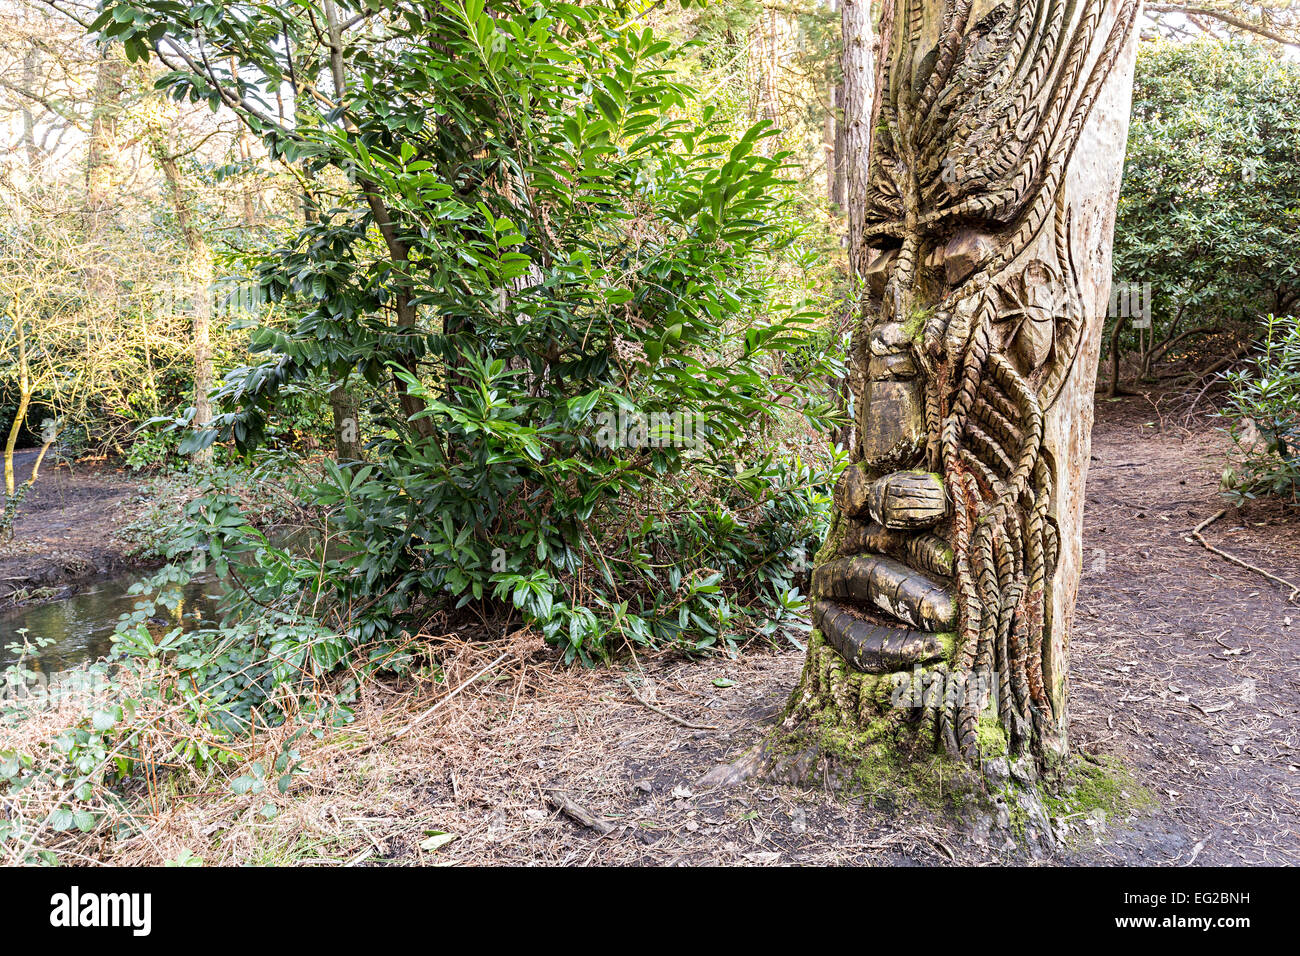 Tribal face carved in tree, Tredegar House Country Park, Newport, Wales, UK - Stock Image